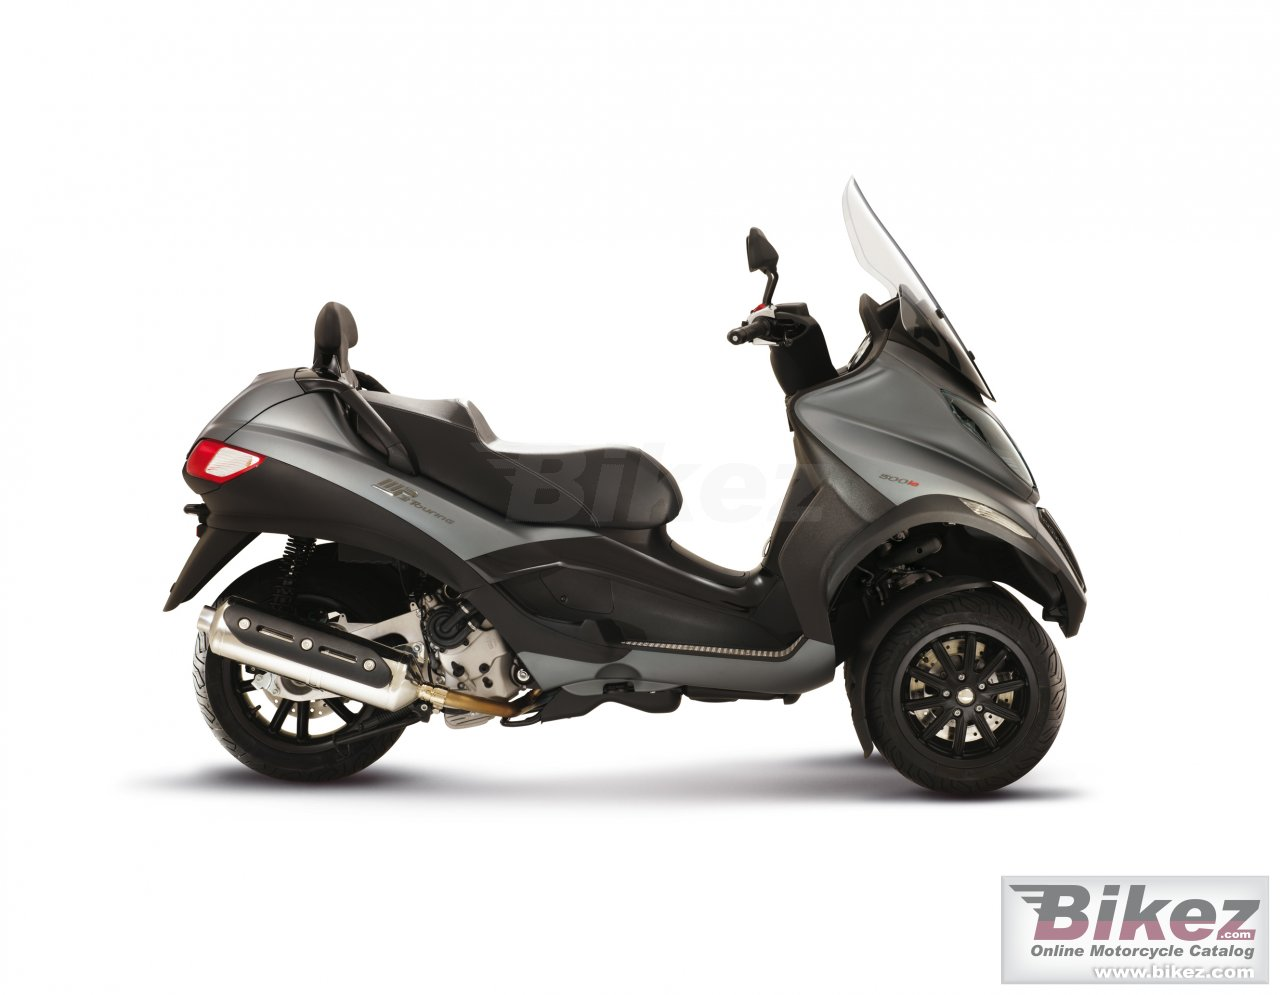 Big Piaggio mp3 sport 500 picture and wallpaper from Bikez.com